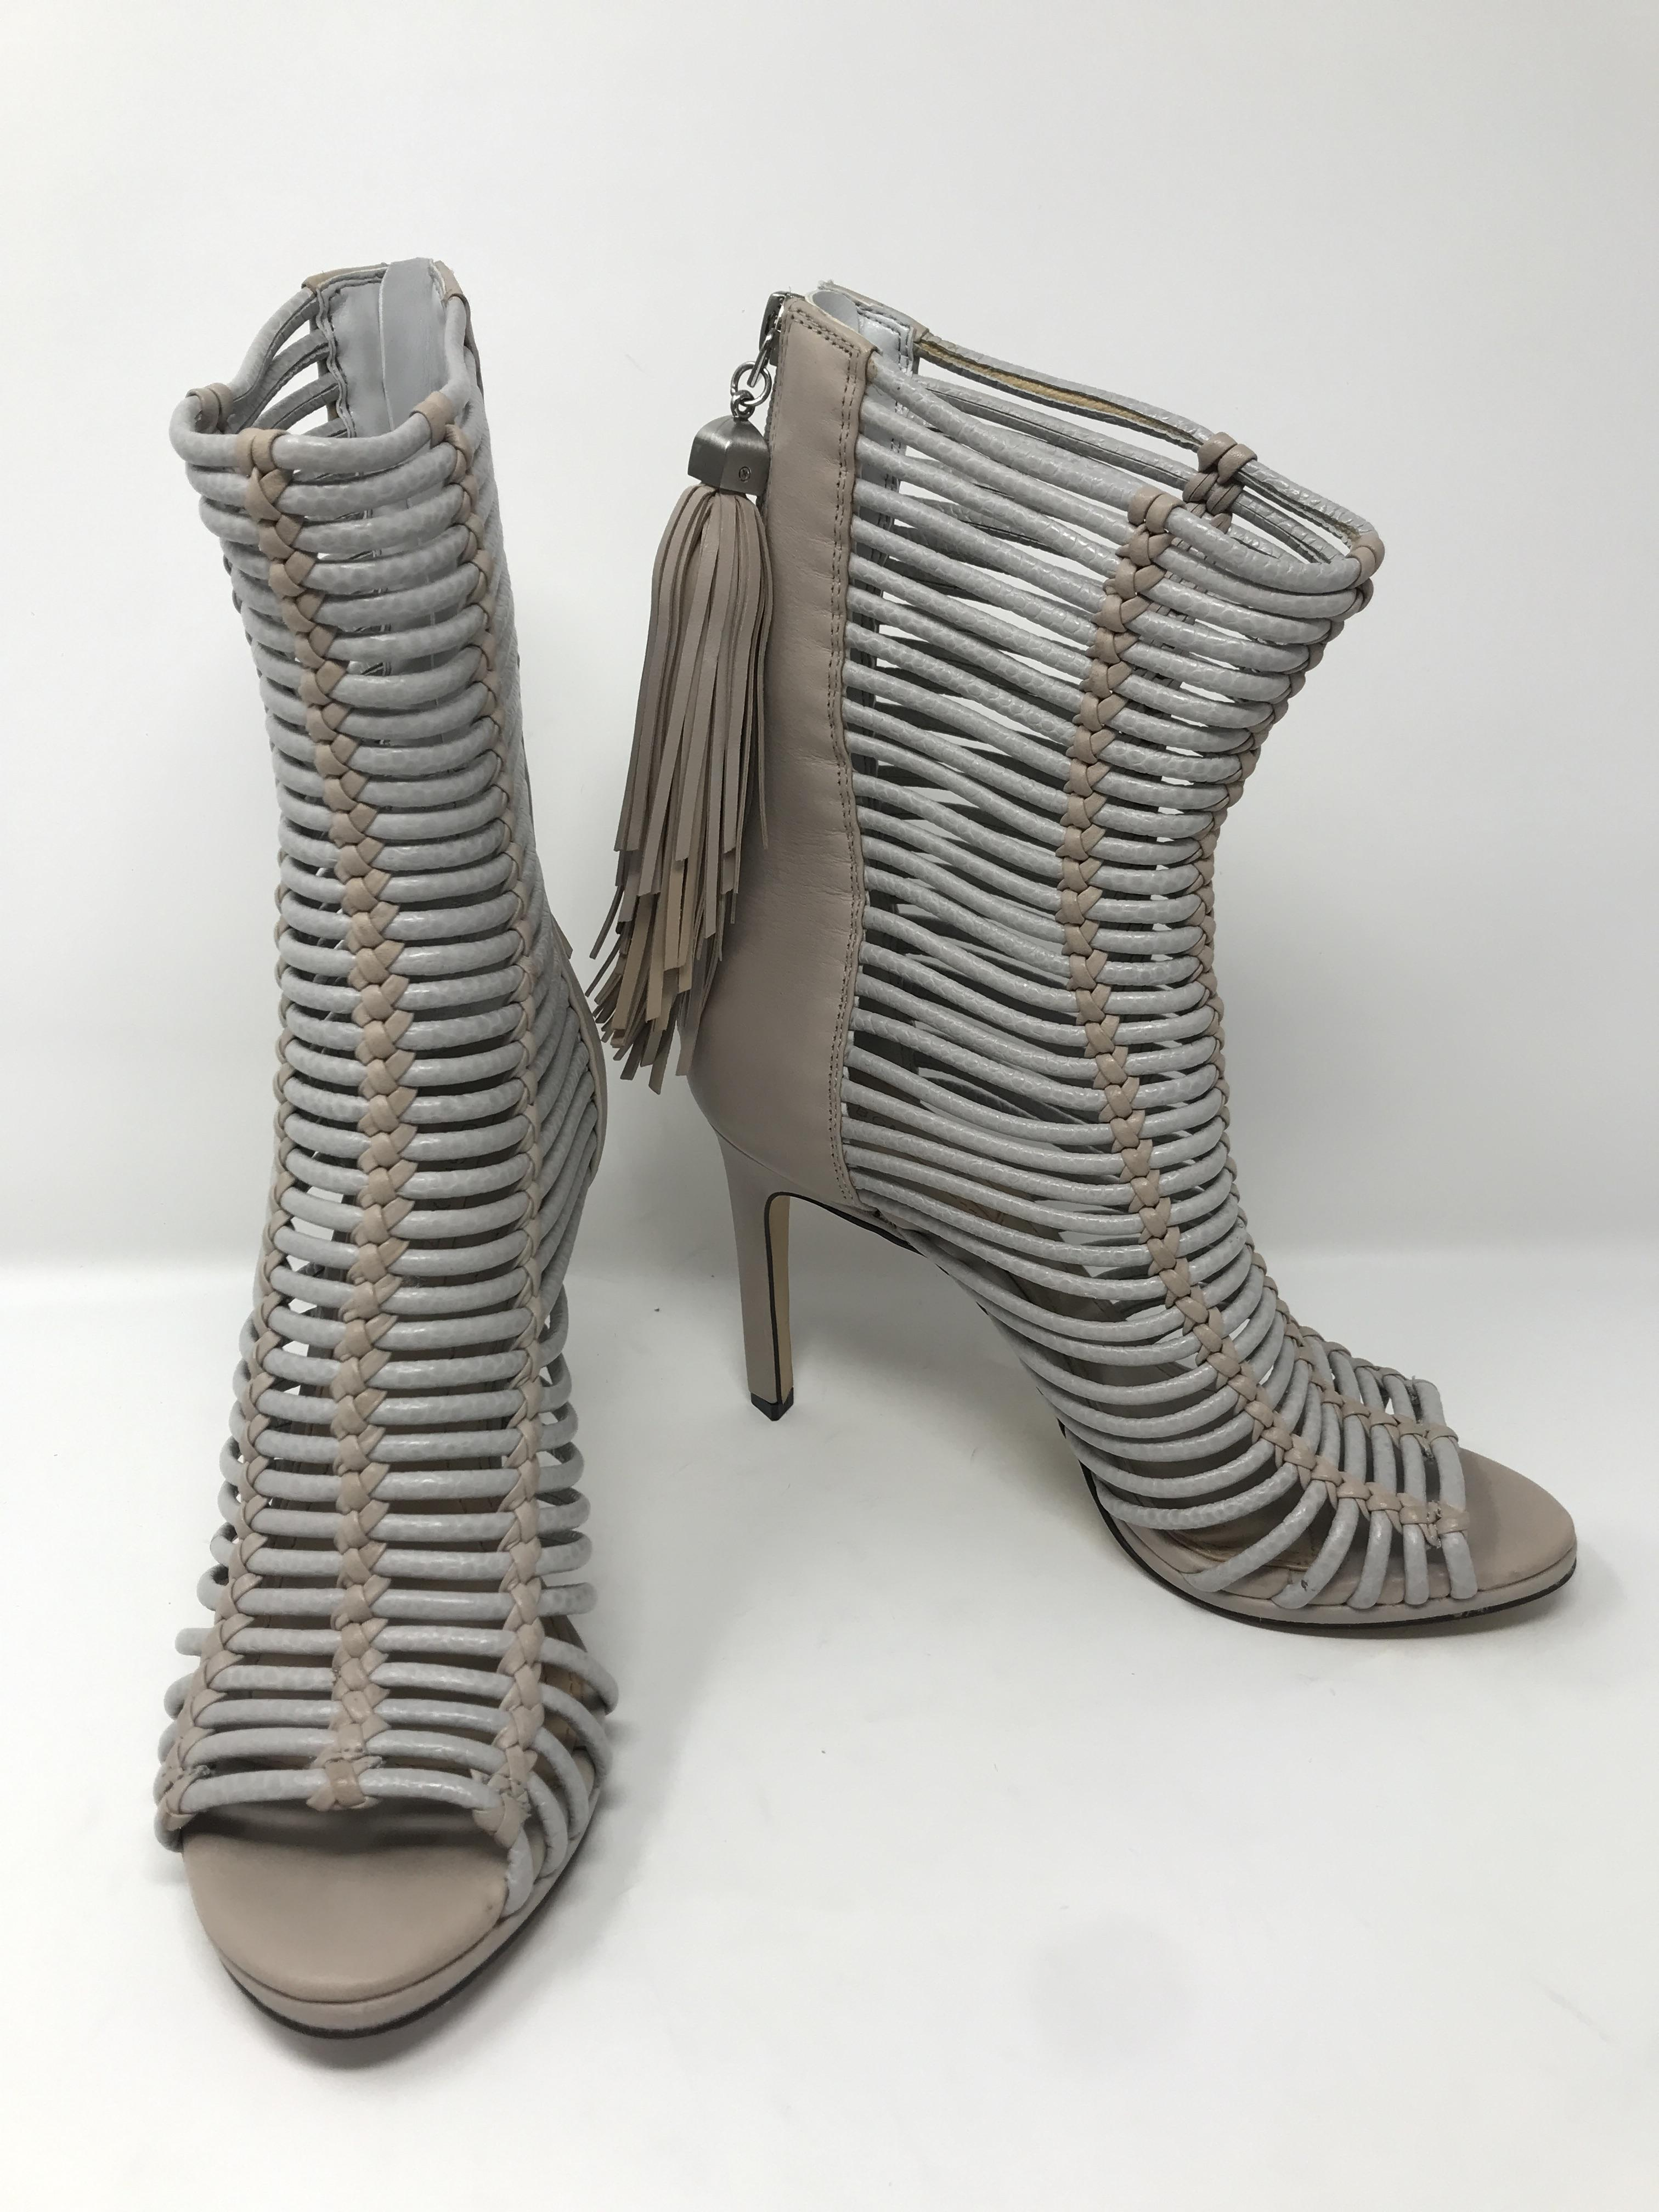 BCBG sandal with Shoes Price: $69.99